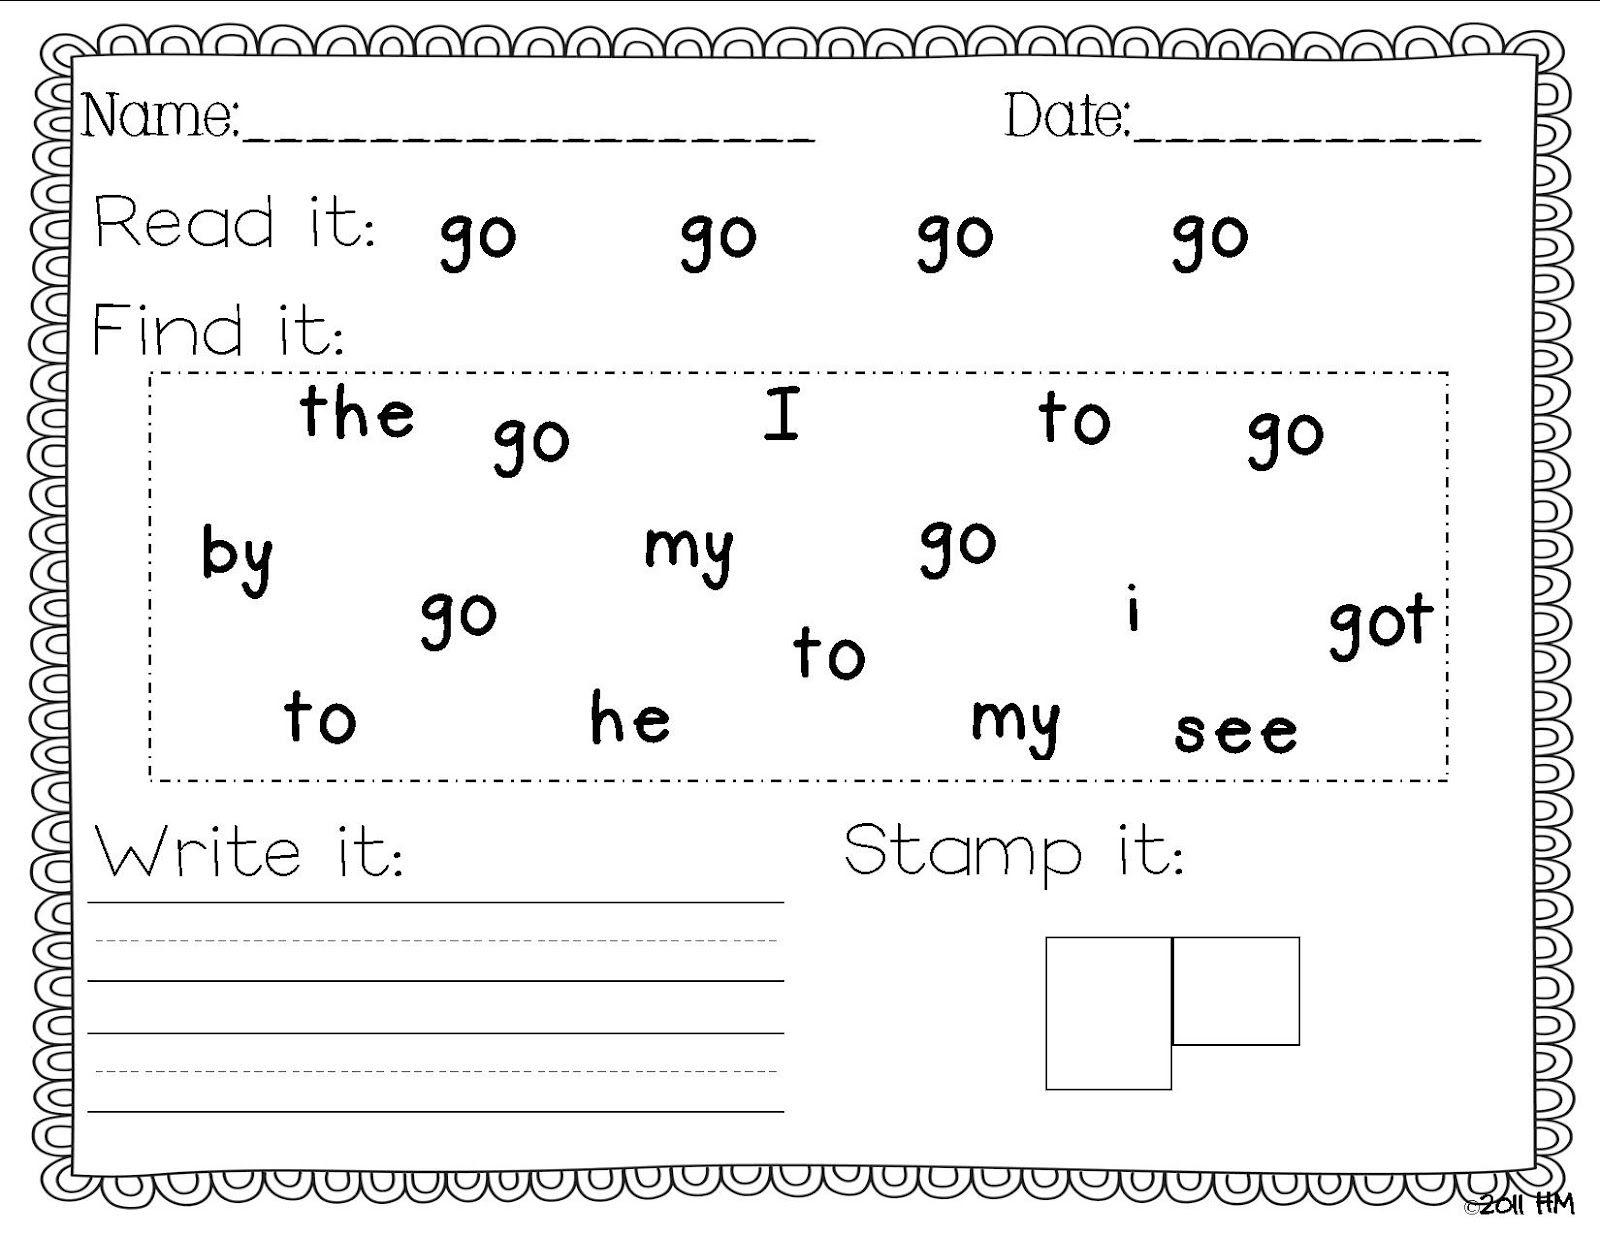 Worksheets Free Printable Sight Word Worksheets sight word writing practice pinterest worksheets free printable words so much learning in one little sheet